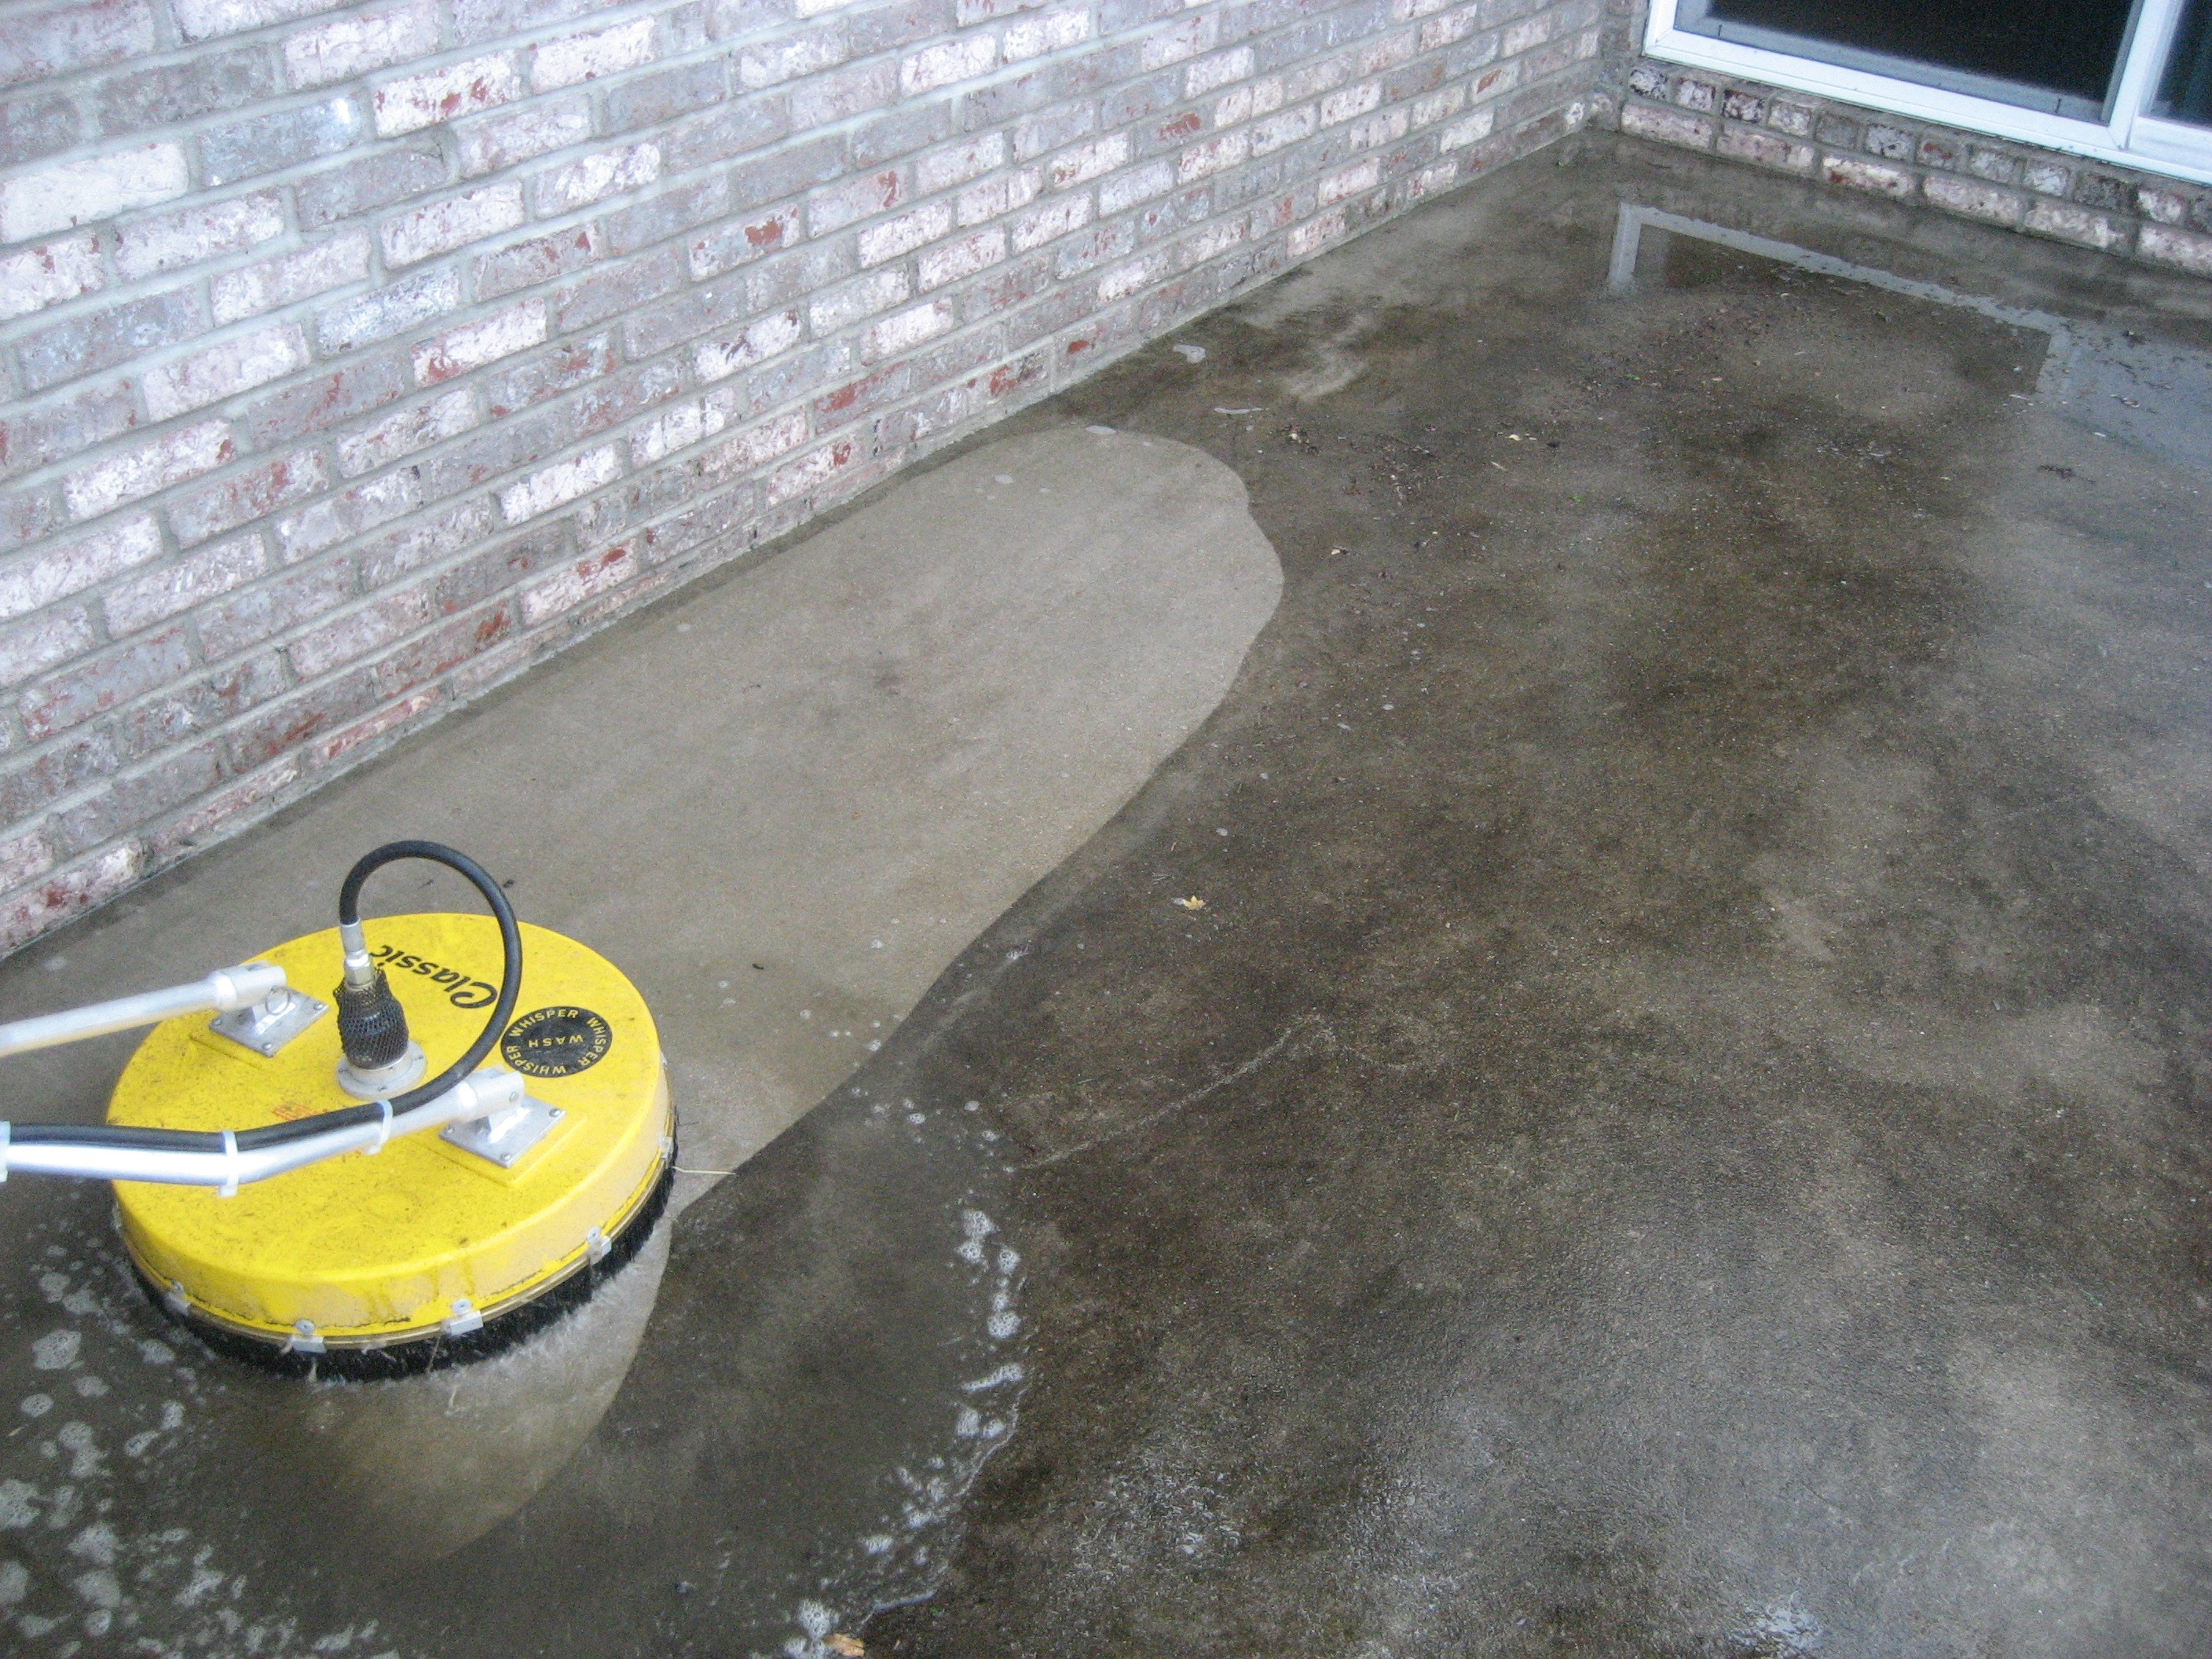 Commercial floor scrubber walk behind floor scrubber for Scrubbing concrete floors